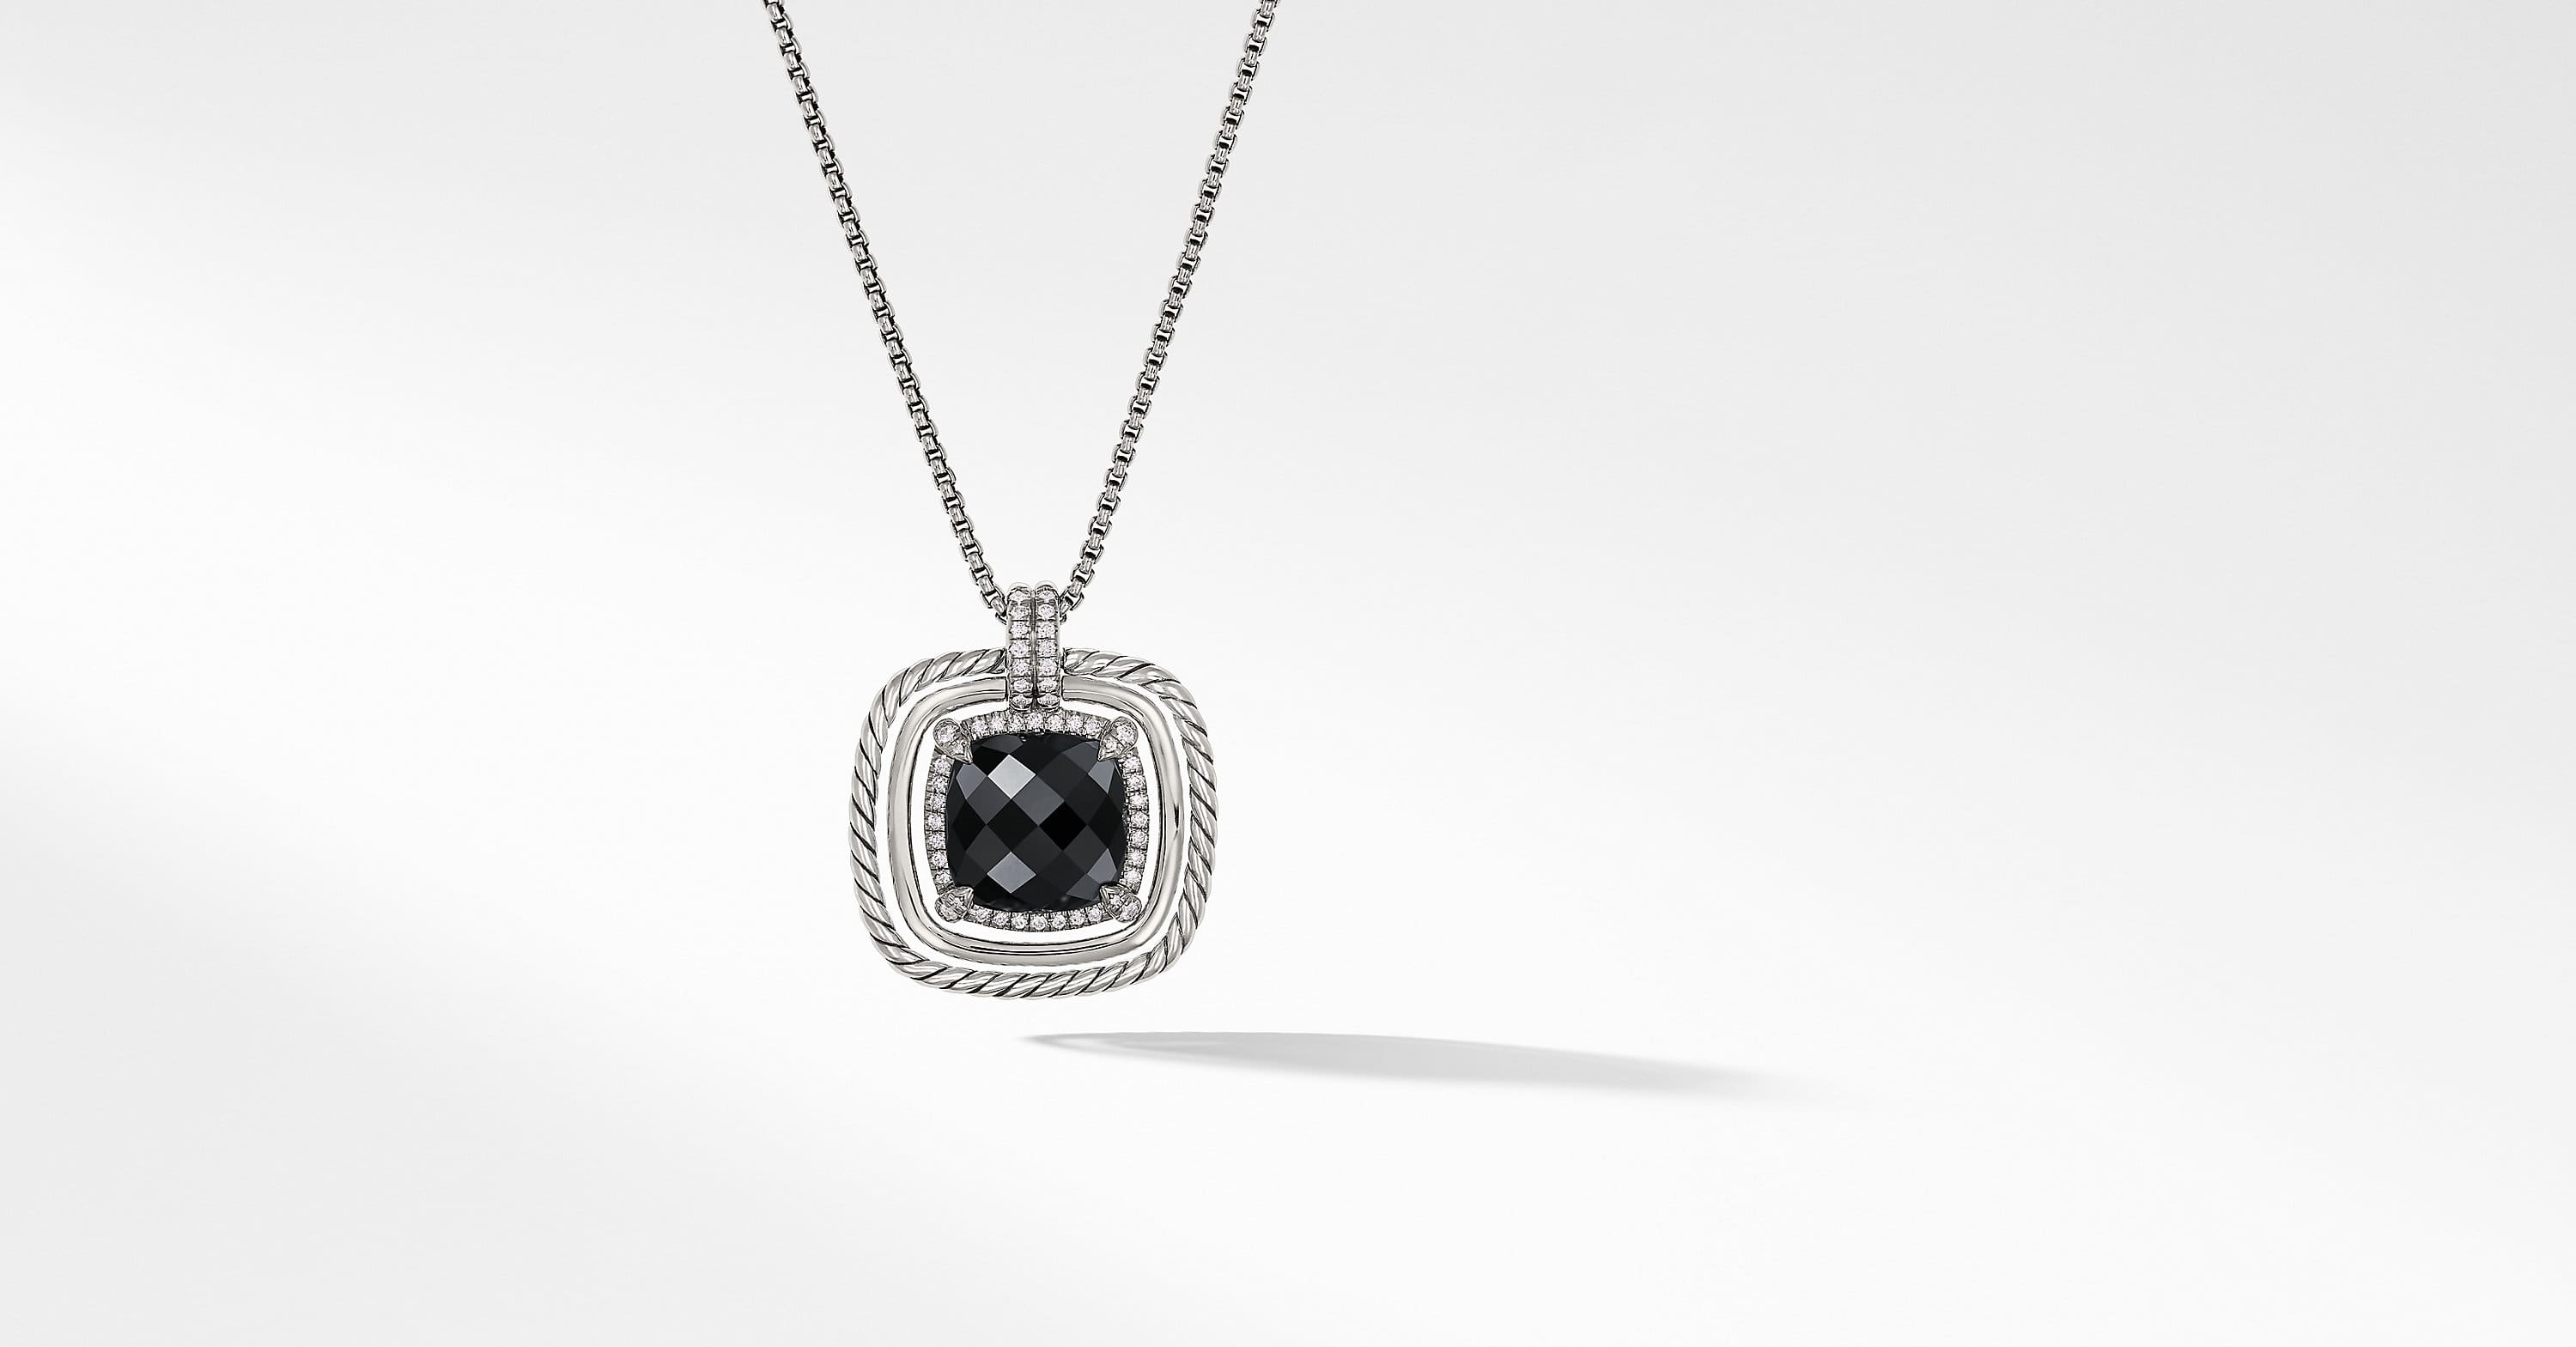 Chatelaine Pave Bezel Pendant Necklace with Diamonds, 24mm